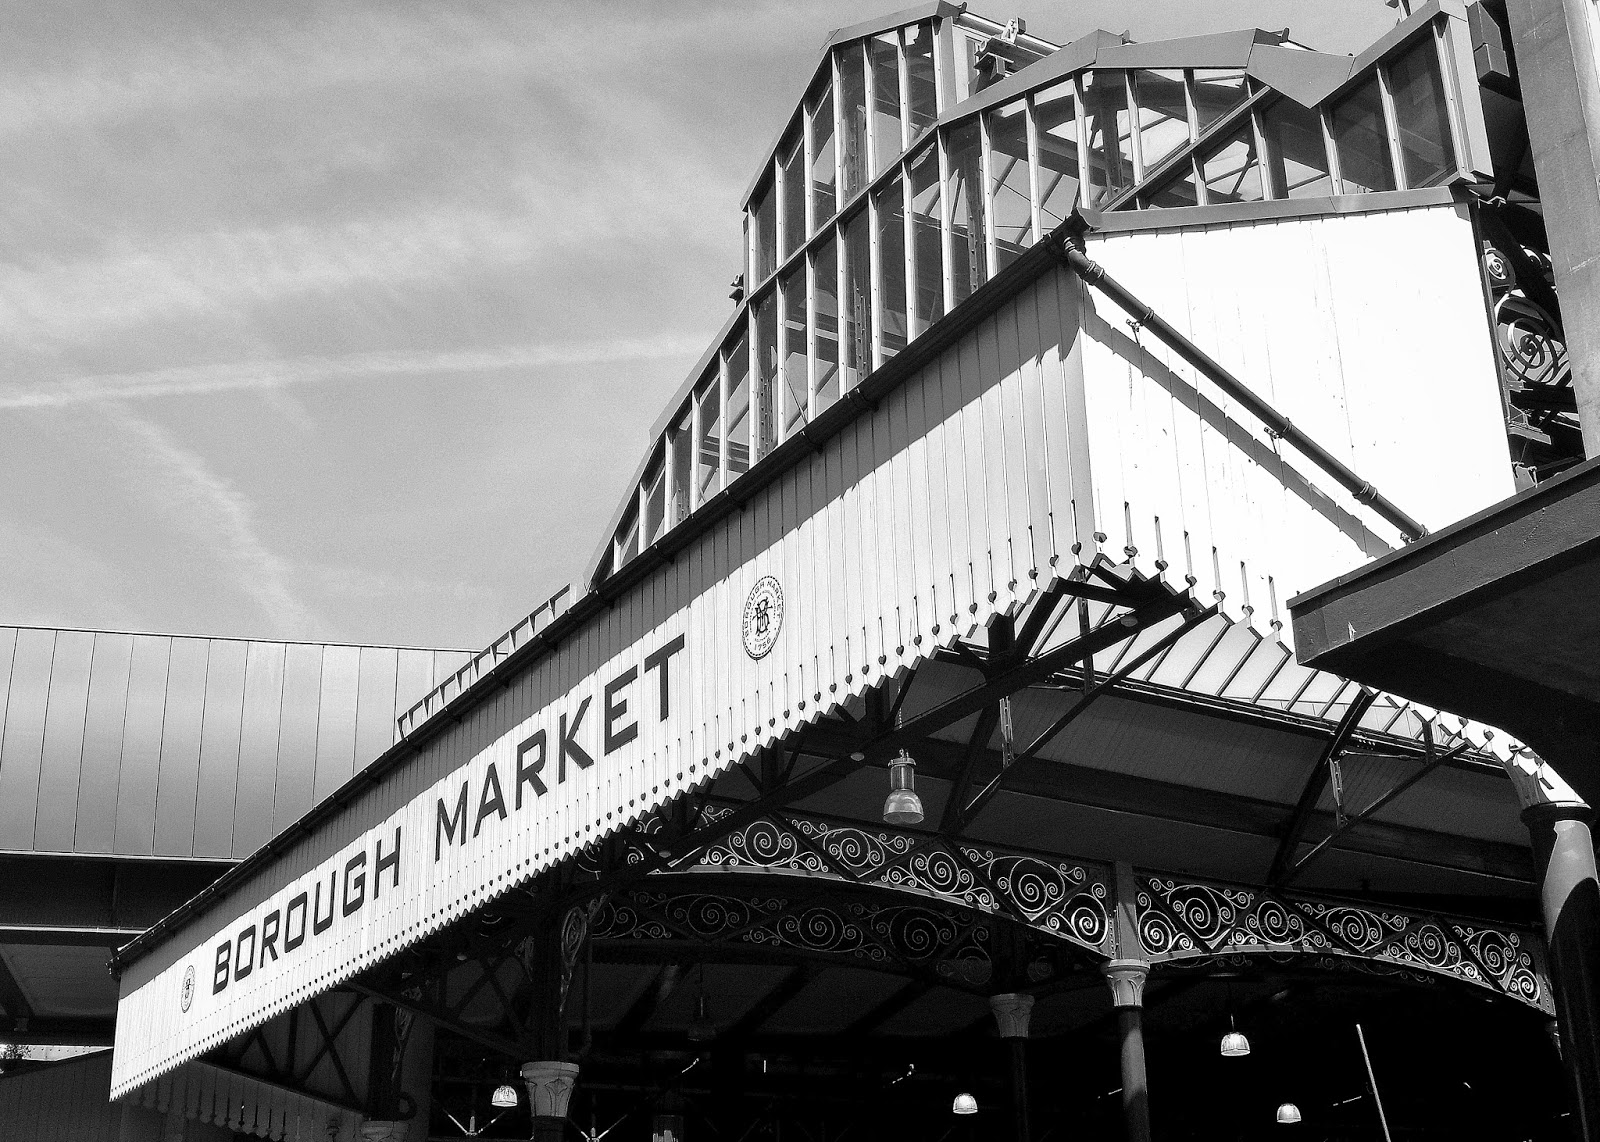 London Bridge Is Staying Strong; a Tribute to BOROUGH MARKET